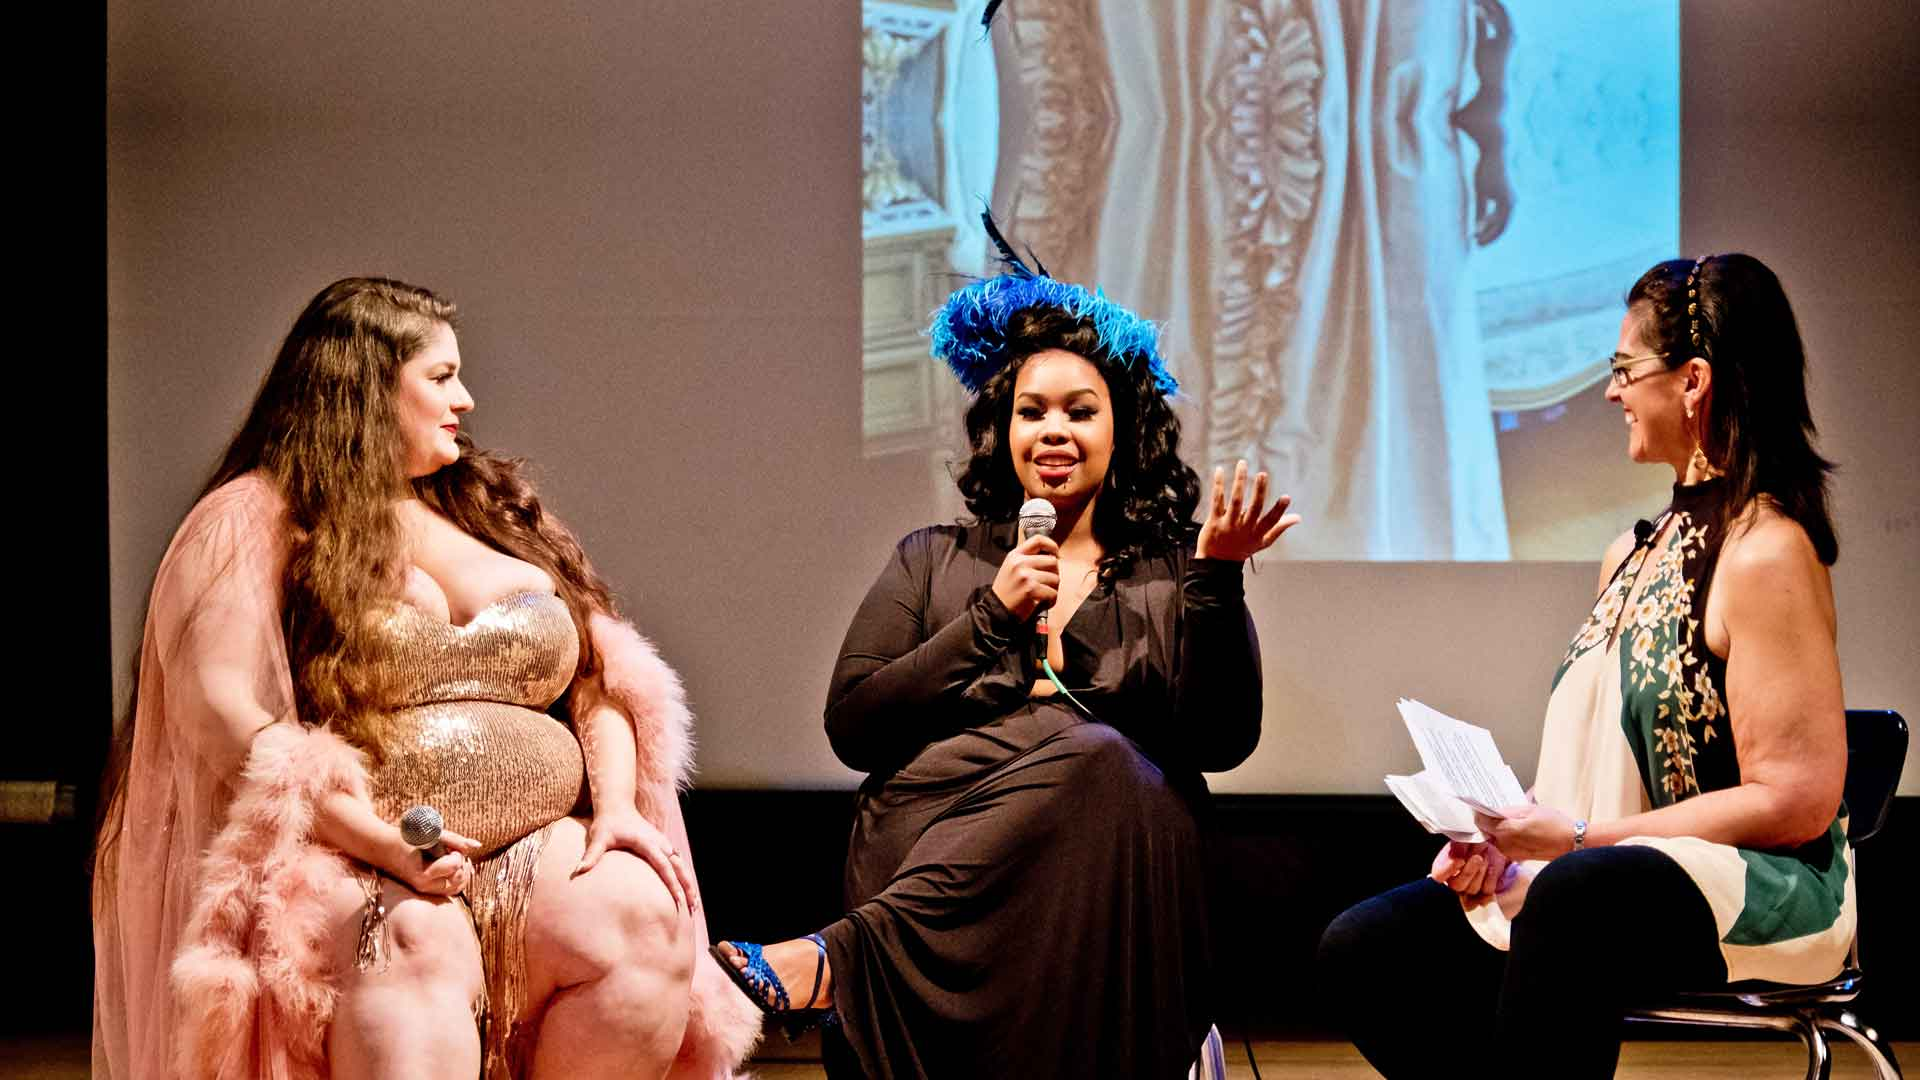 #S2E19 | Fat & Sexy with Carina Shero and Jezebelly